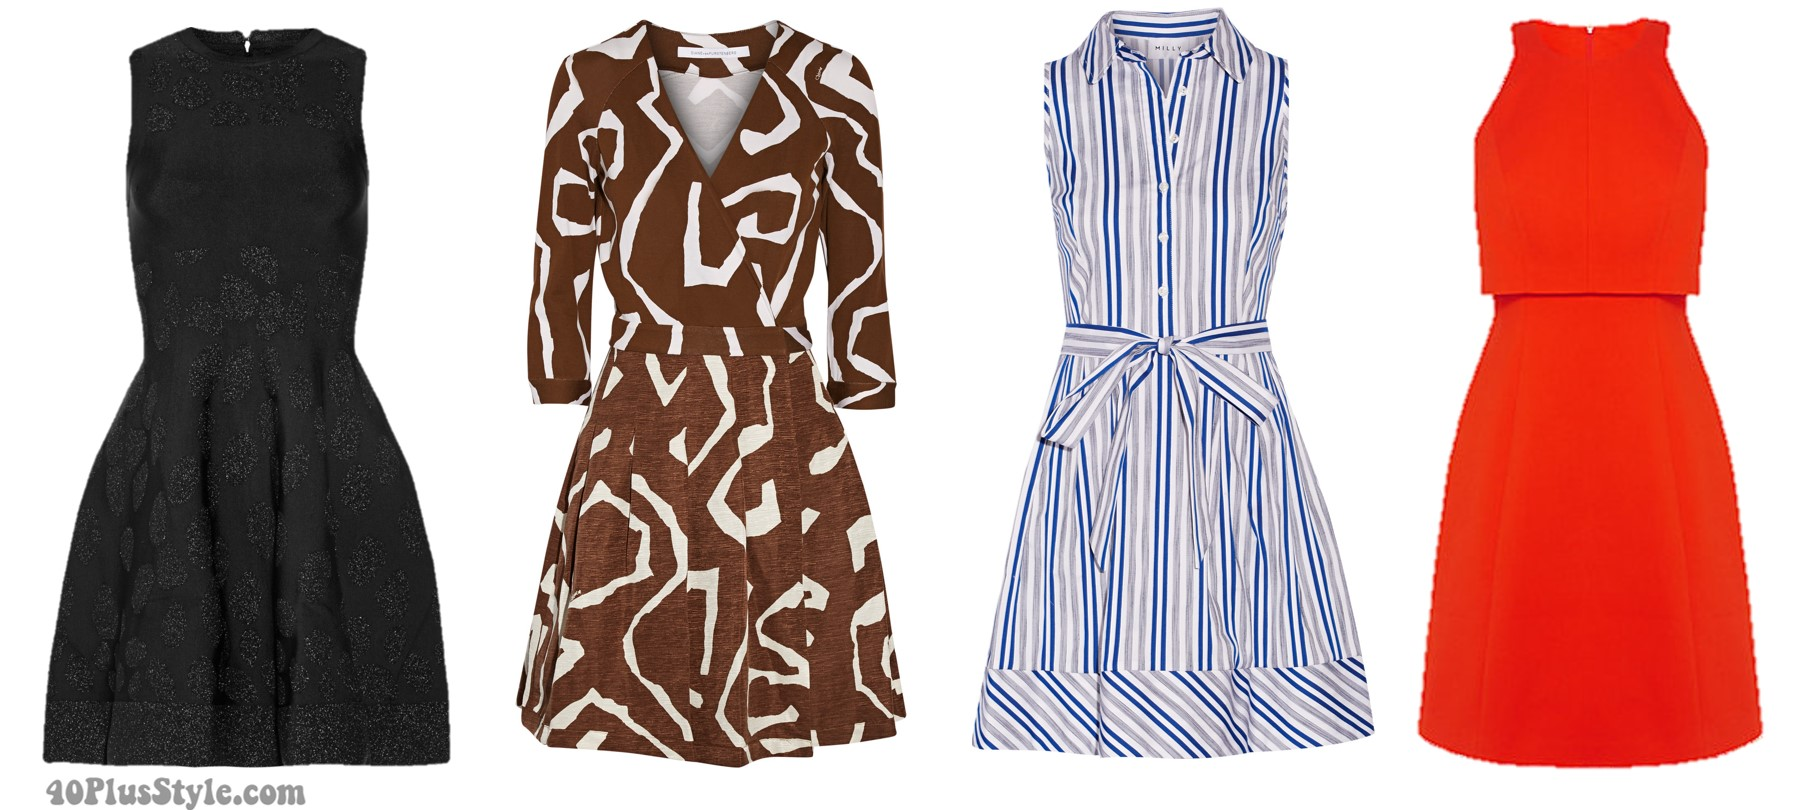 dvf wrap dress #11